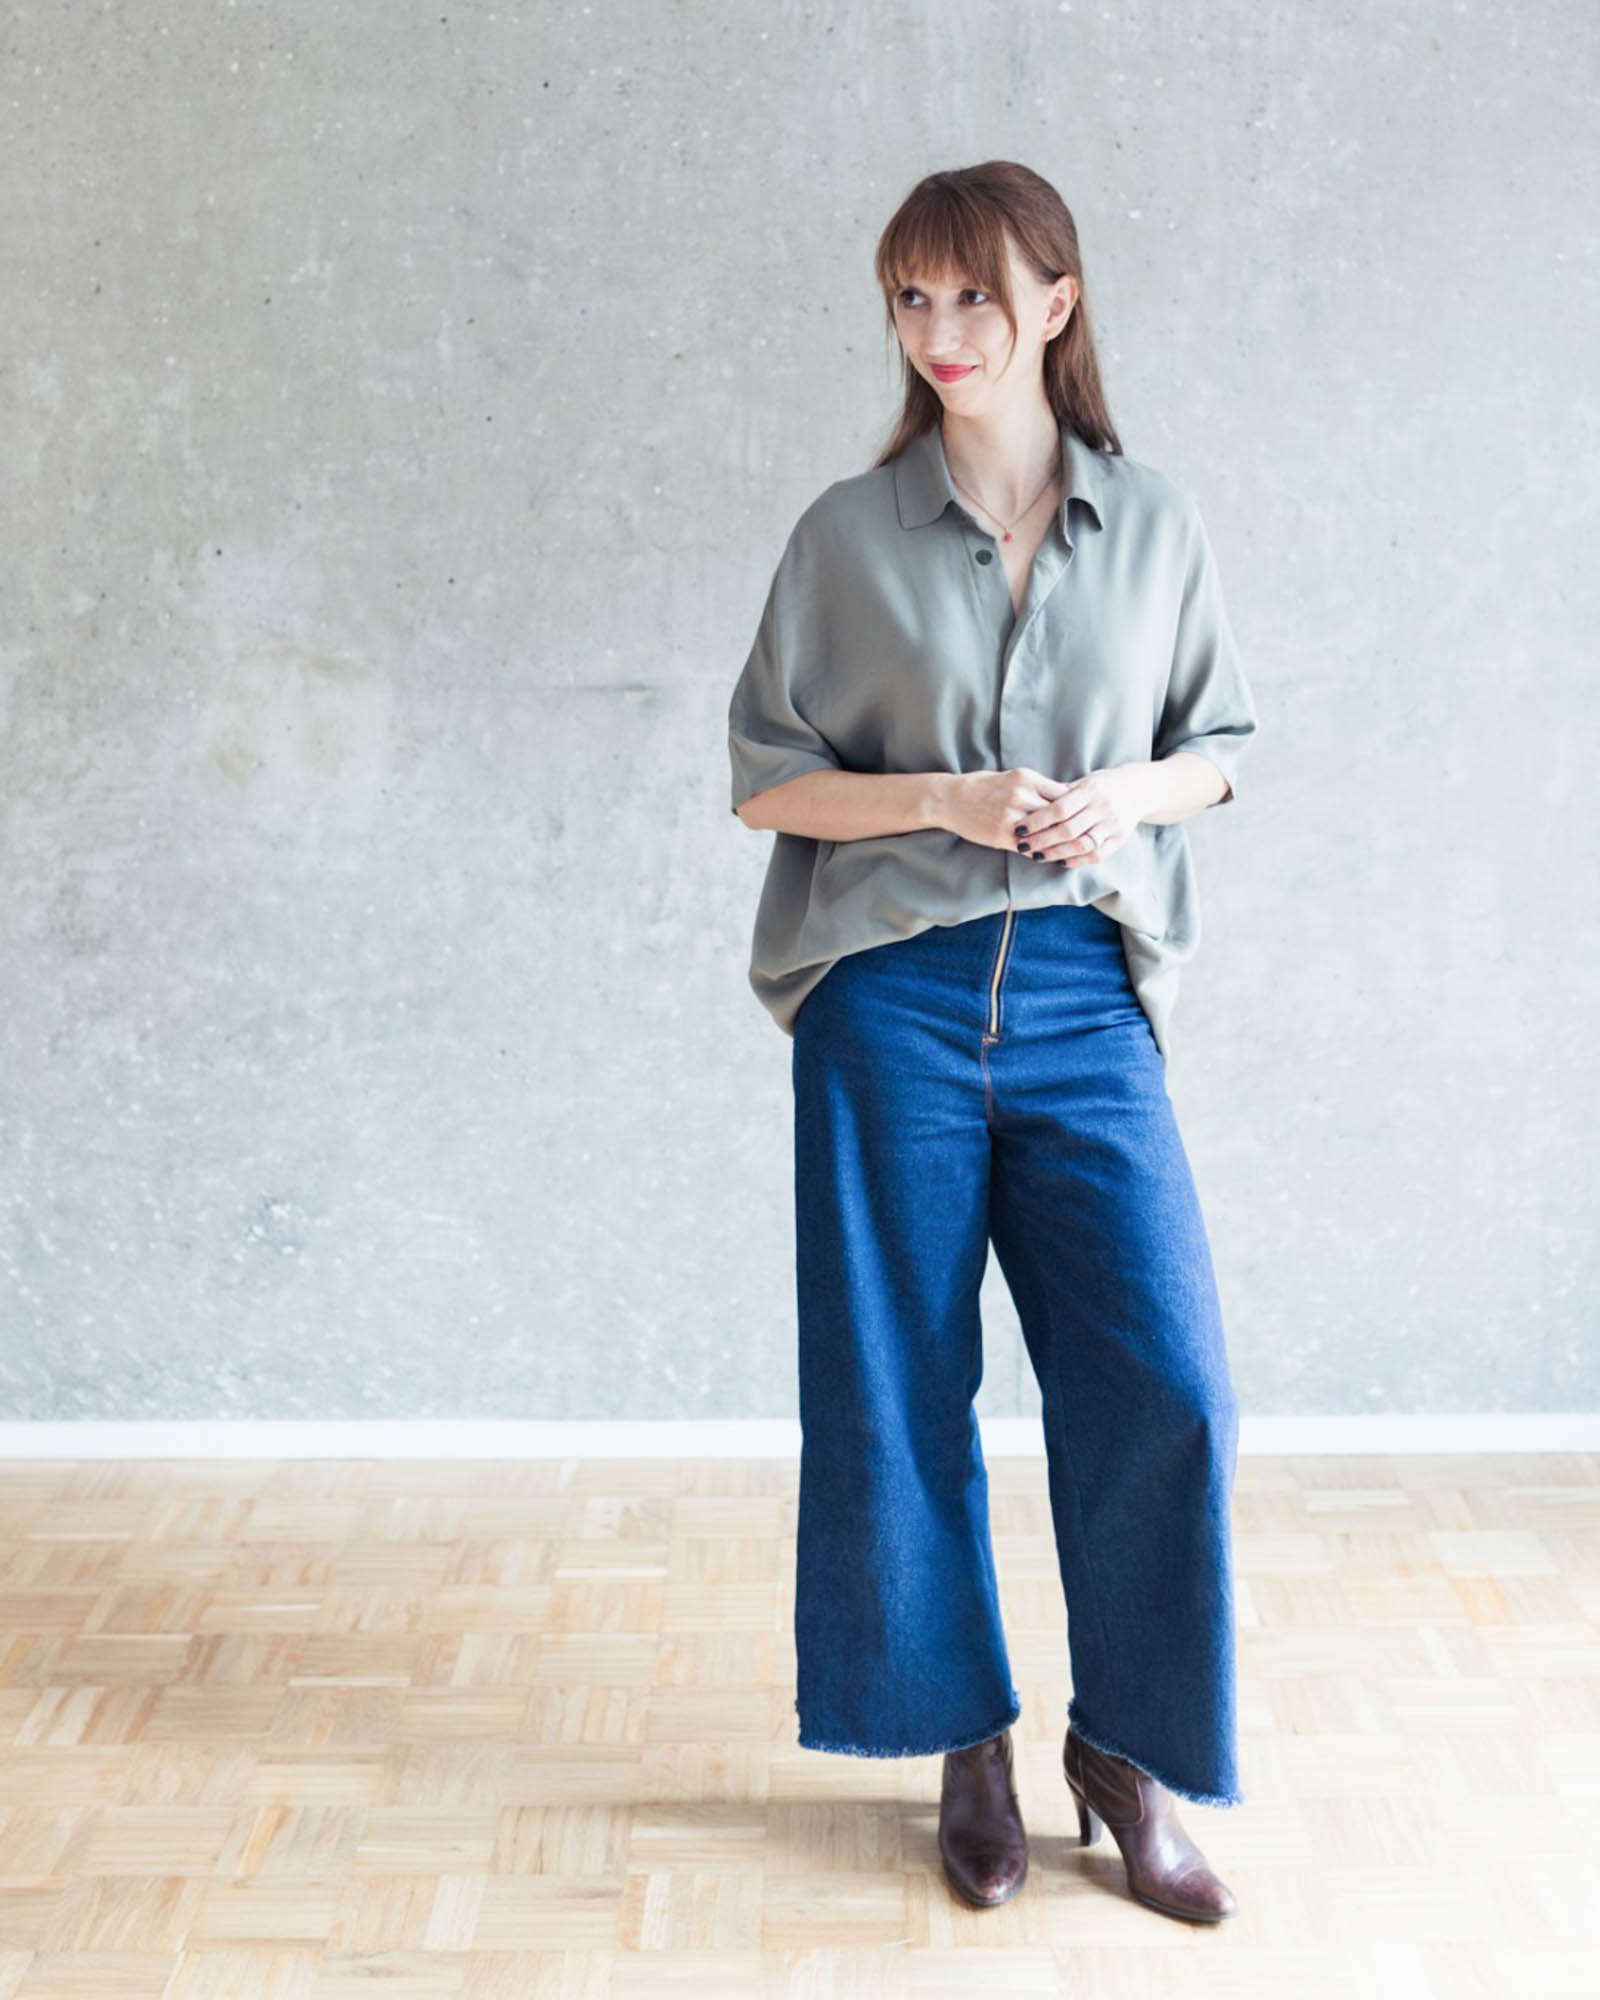 Jeans nähen - Outfitidee mit Bluse Cocoon